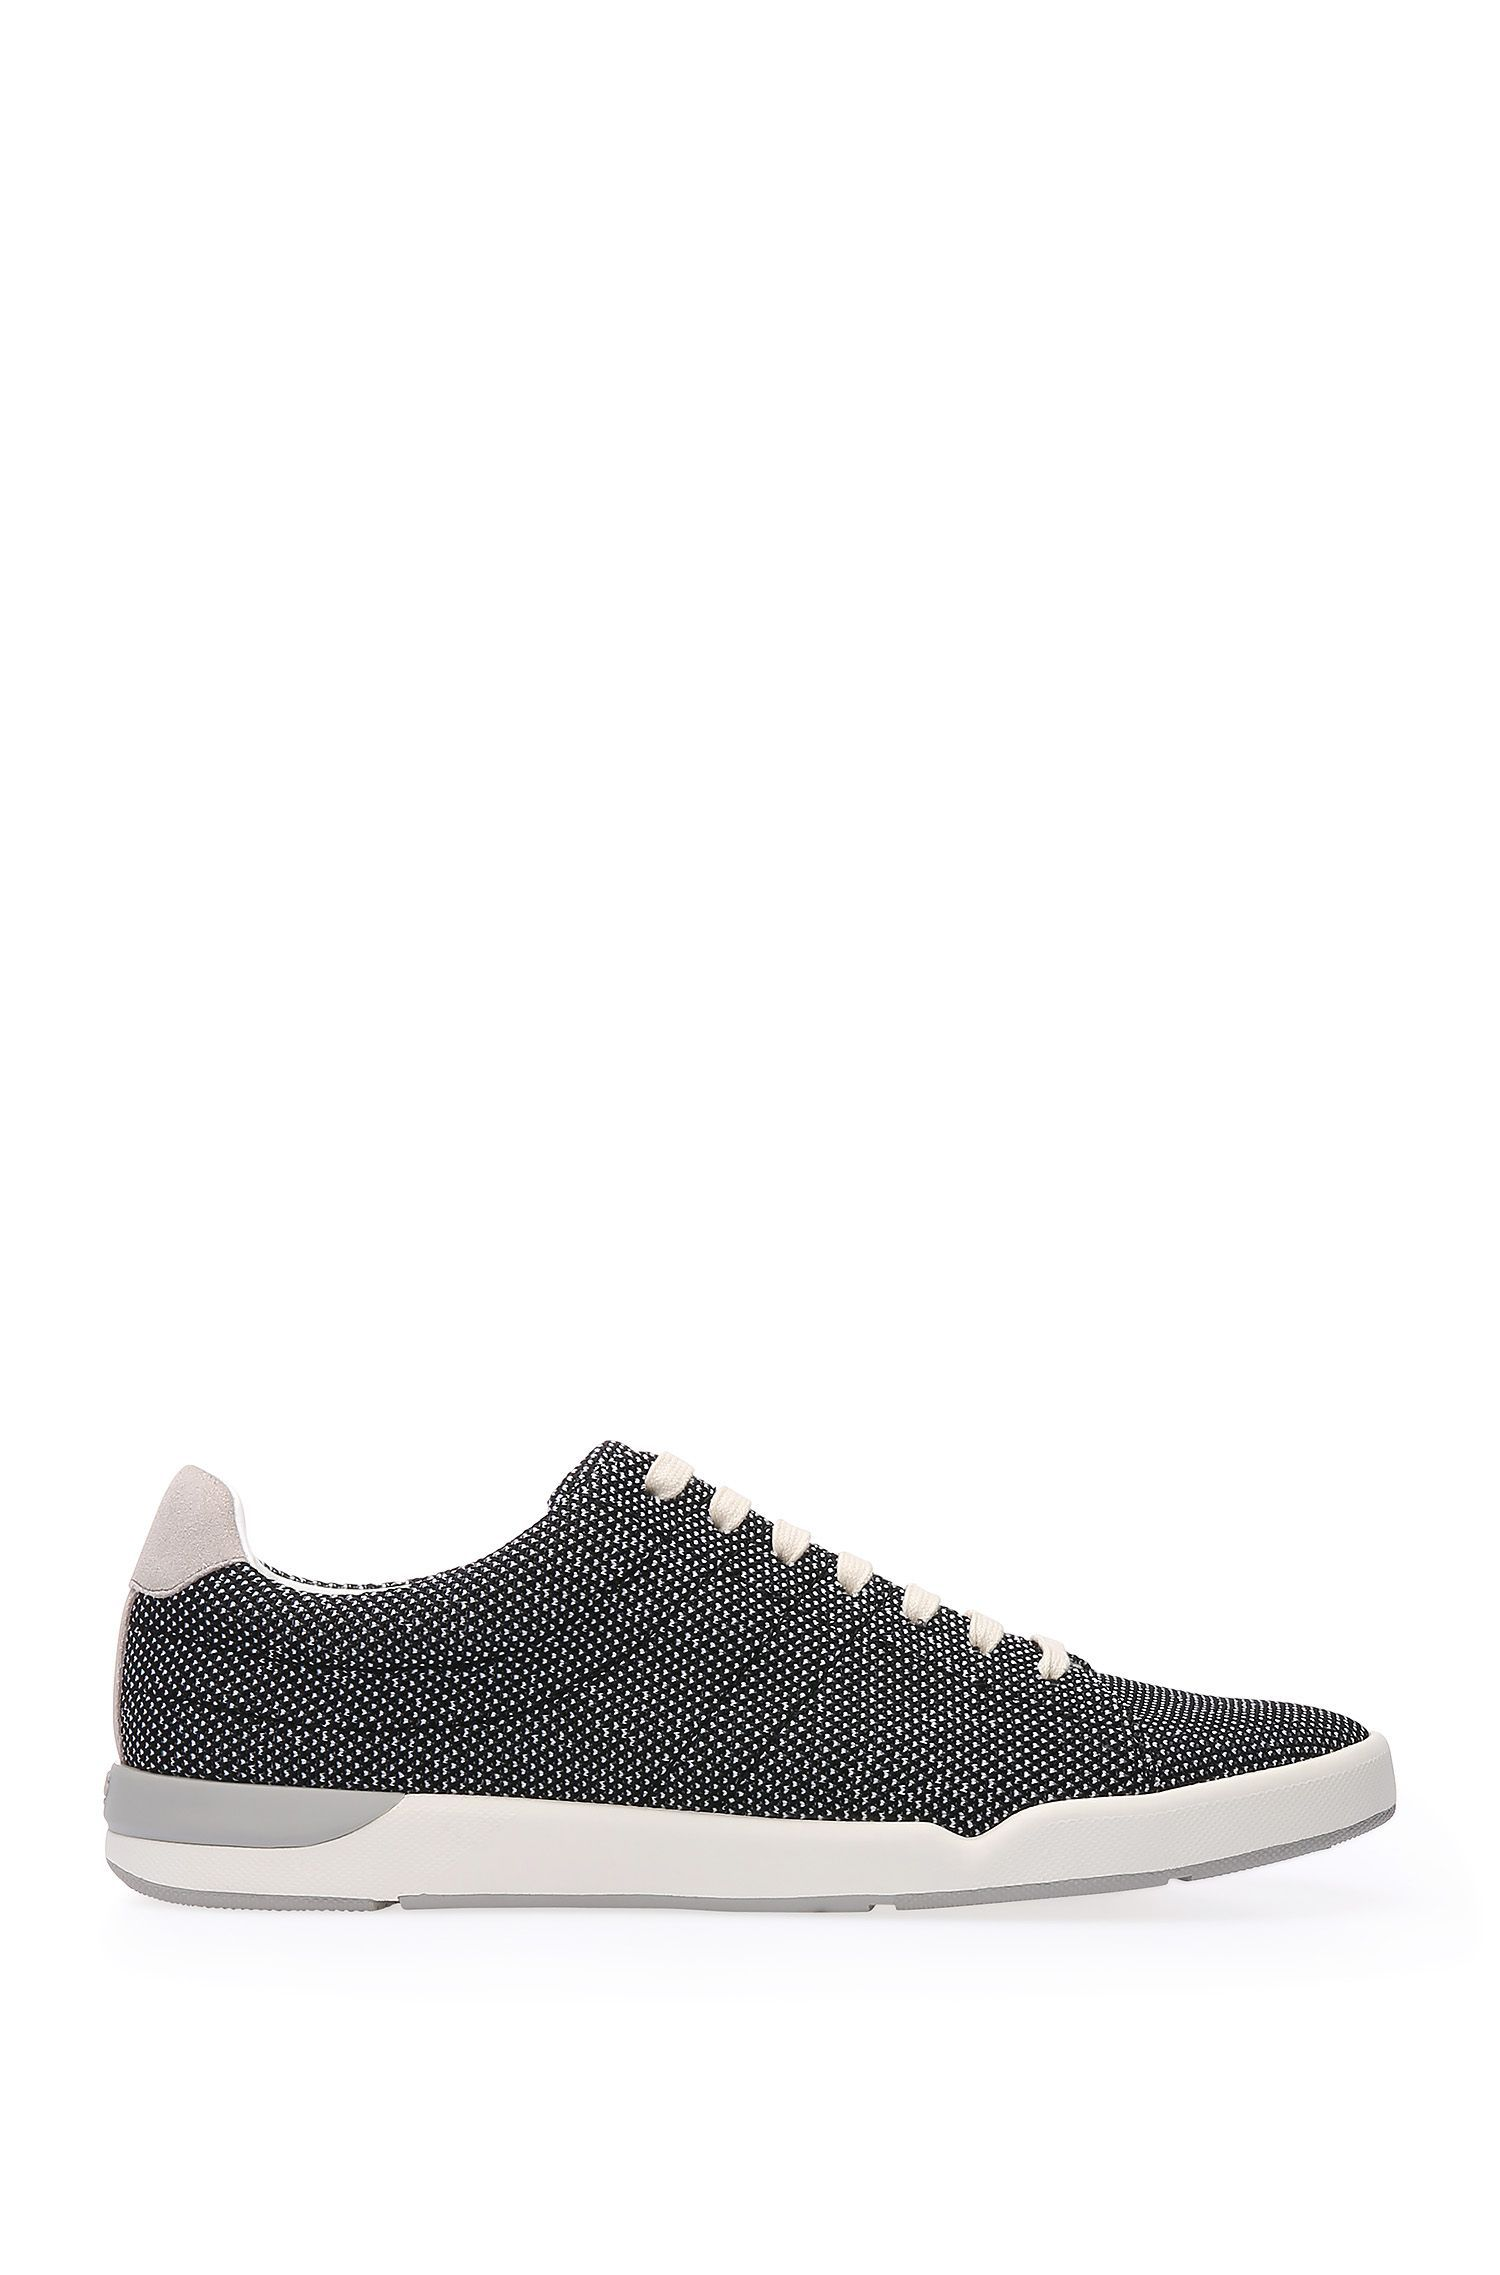 Trainers in textured fabric with leather trim: 'Stillnes_Tenn_txms'